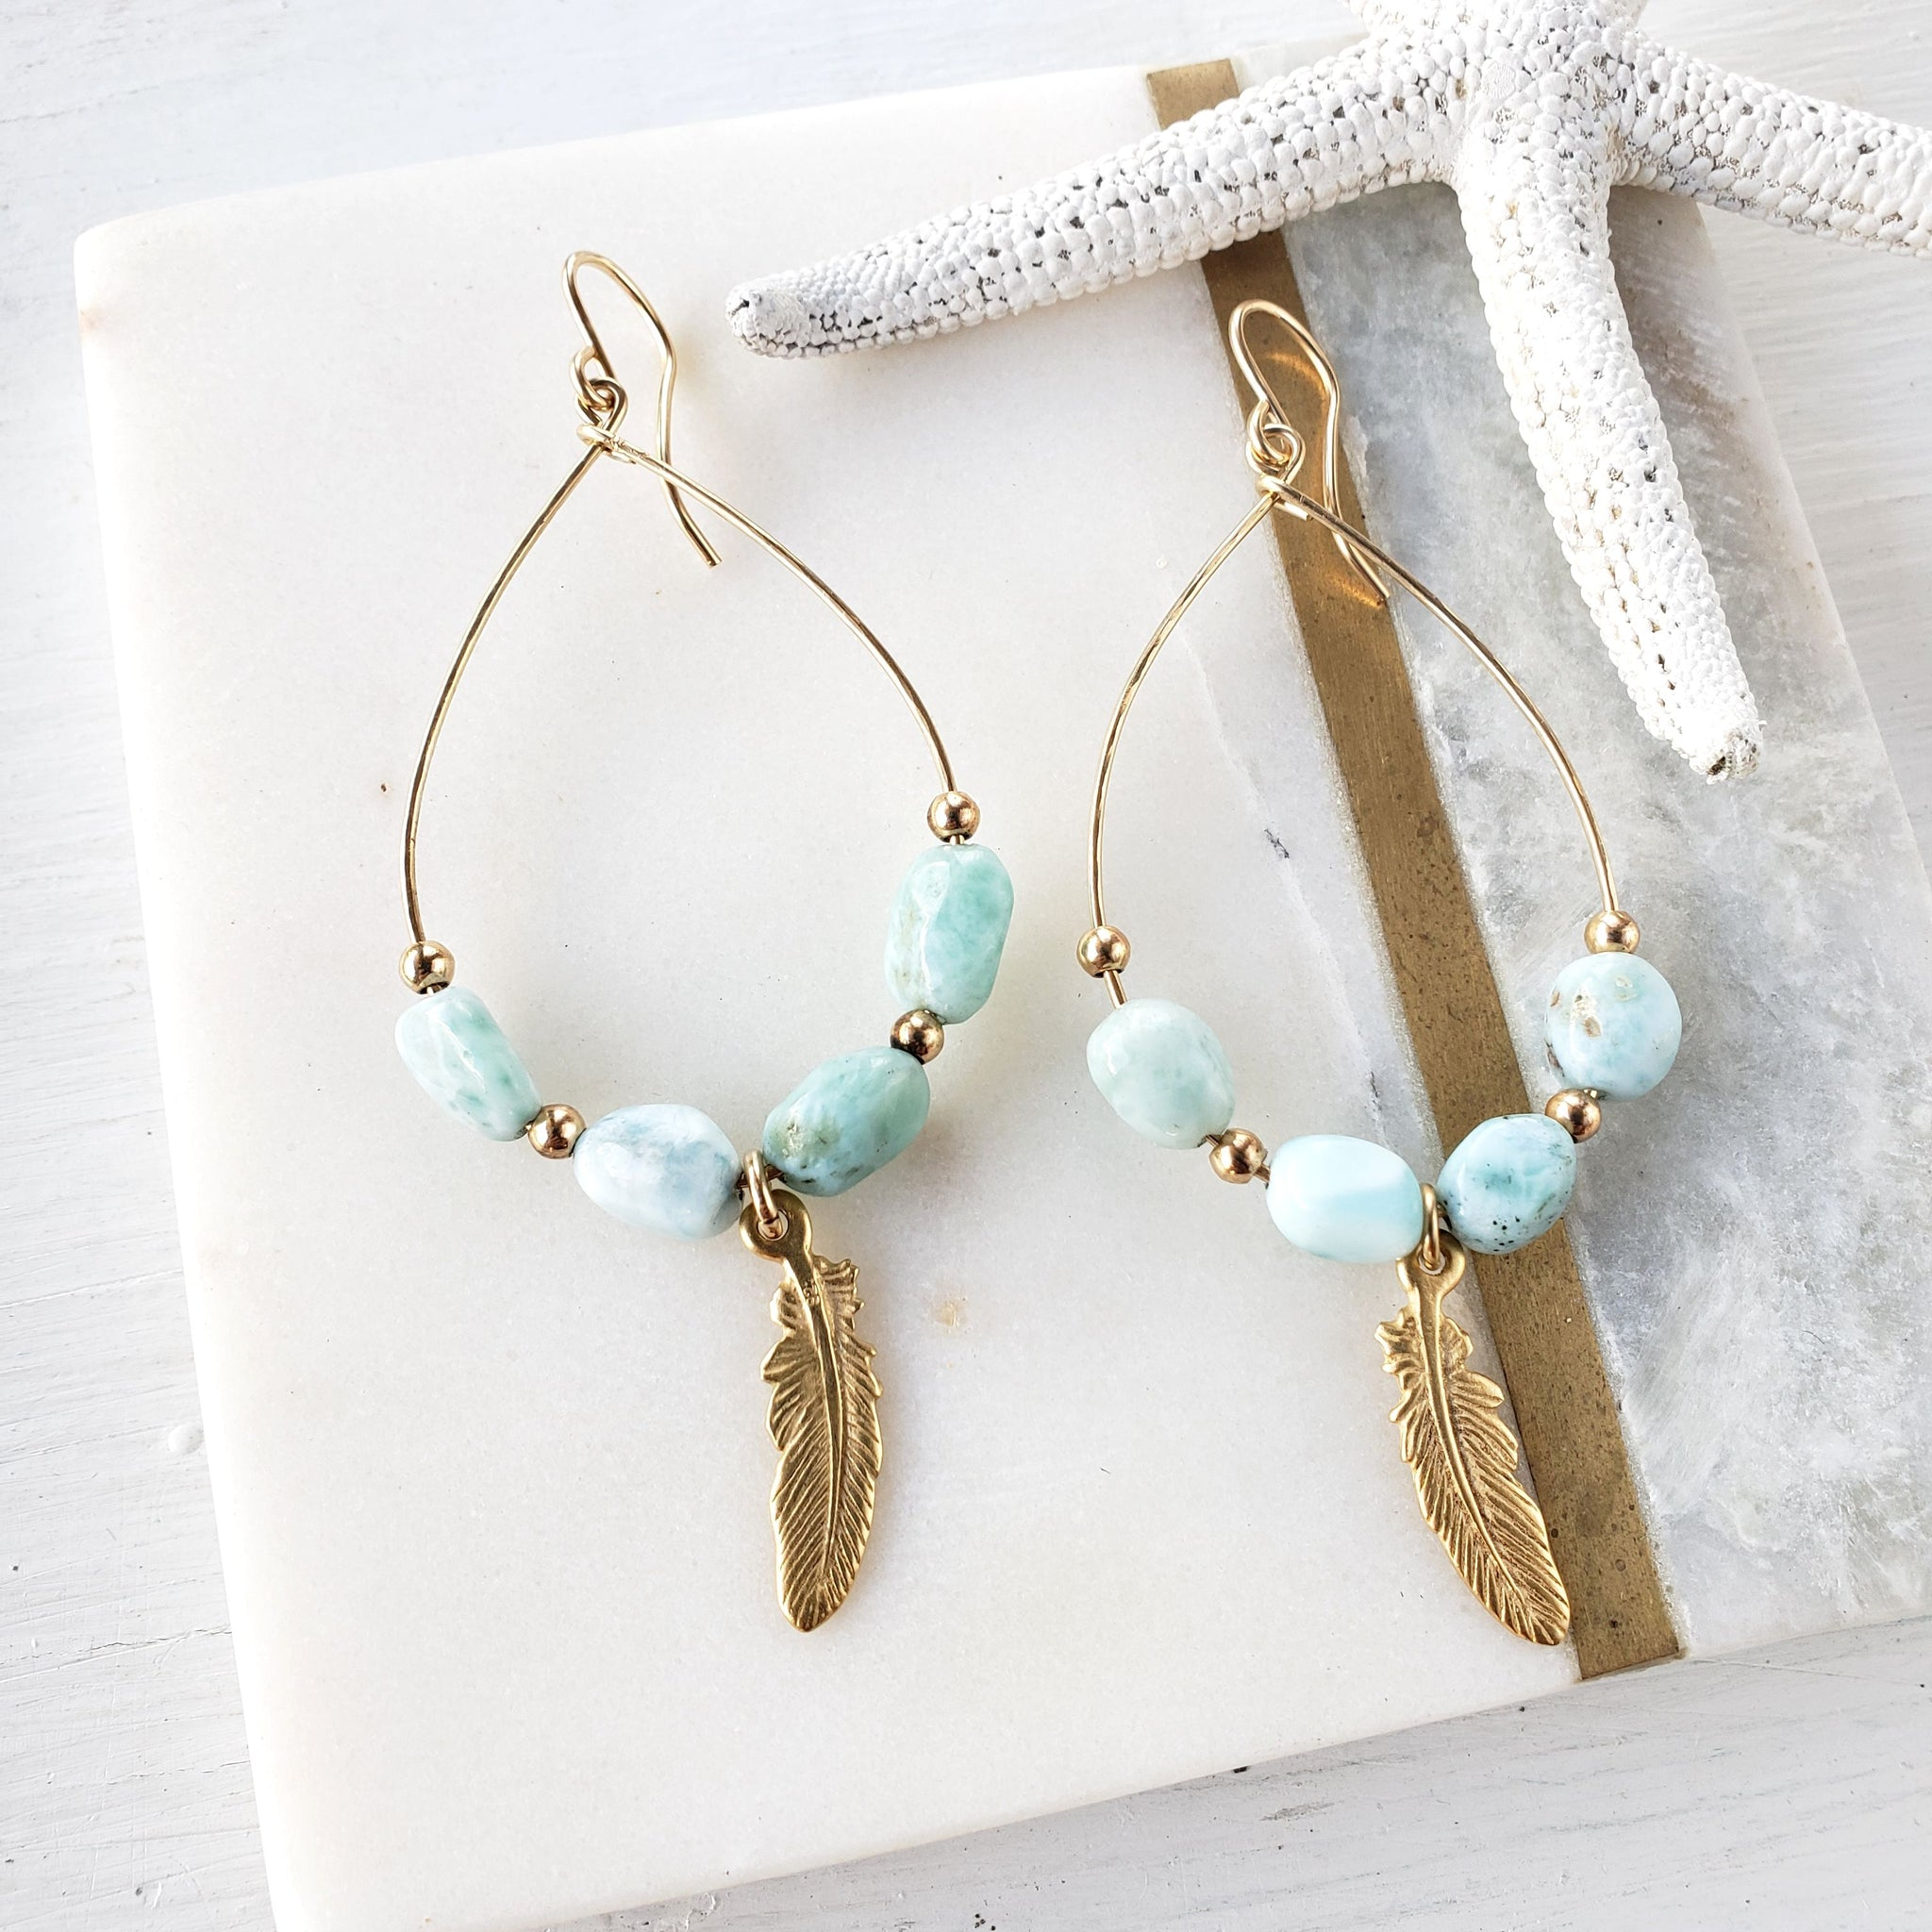 Gold Larimar Hoop Earrings - Sati Gems Hawaii Healing Crystal Gemstone Jewelry